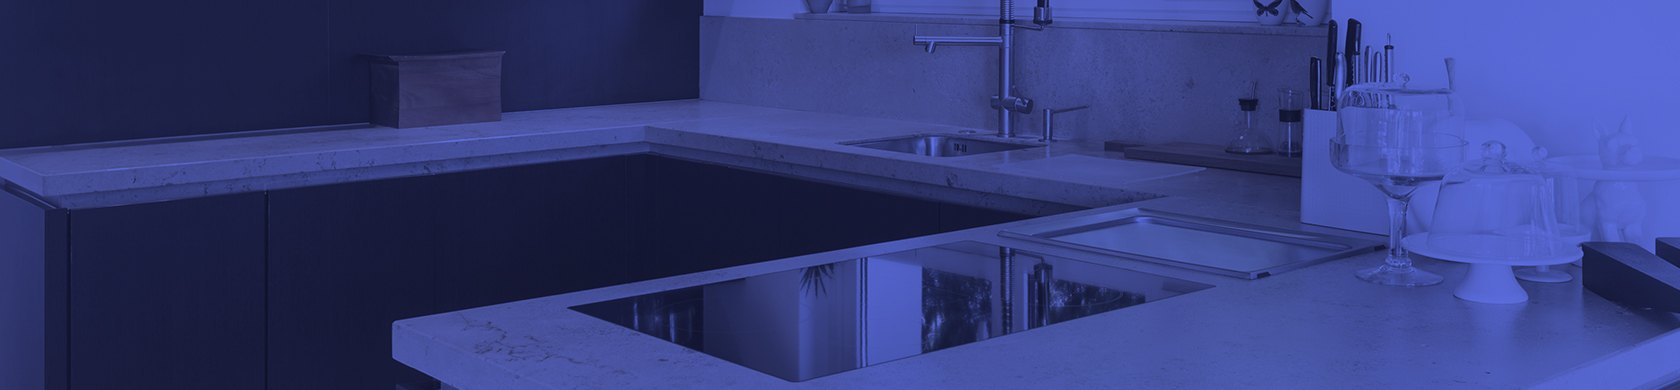 Residential Kitchen And Bath Solutions